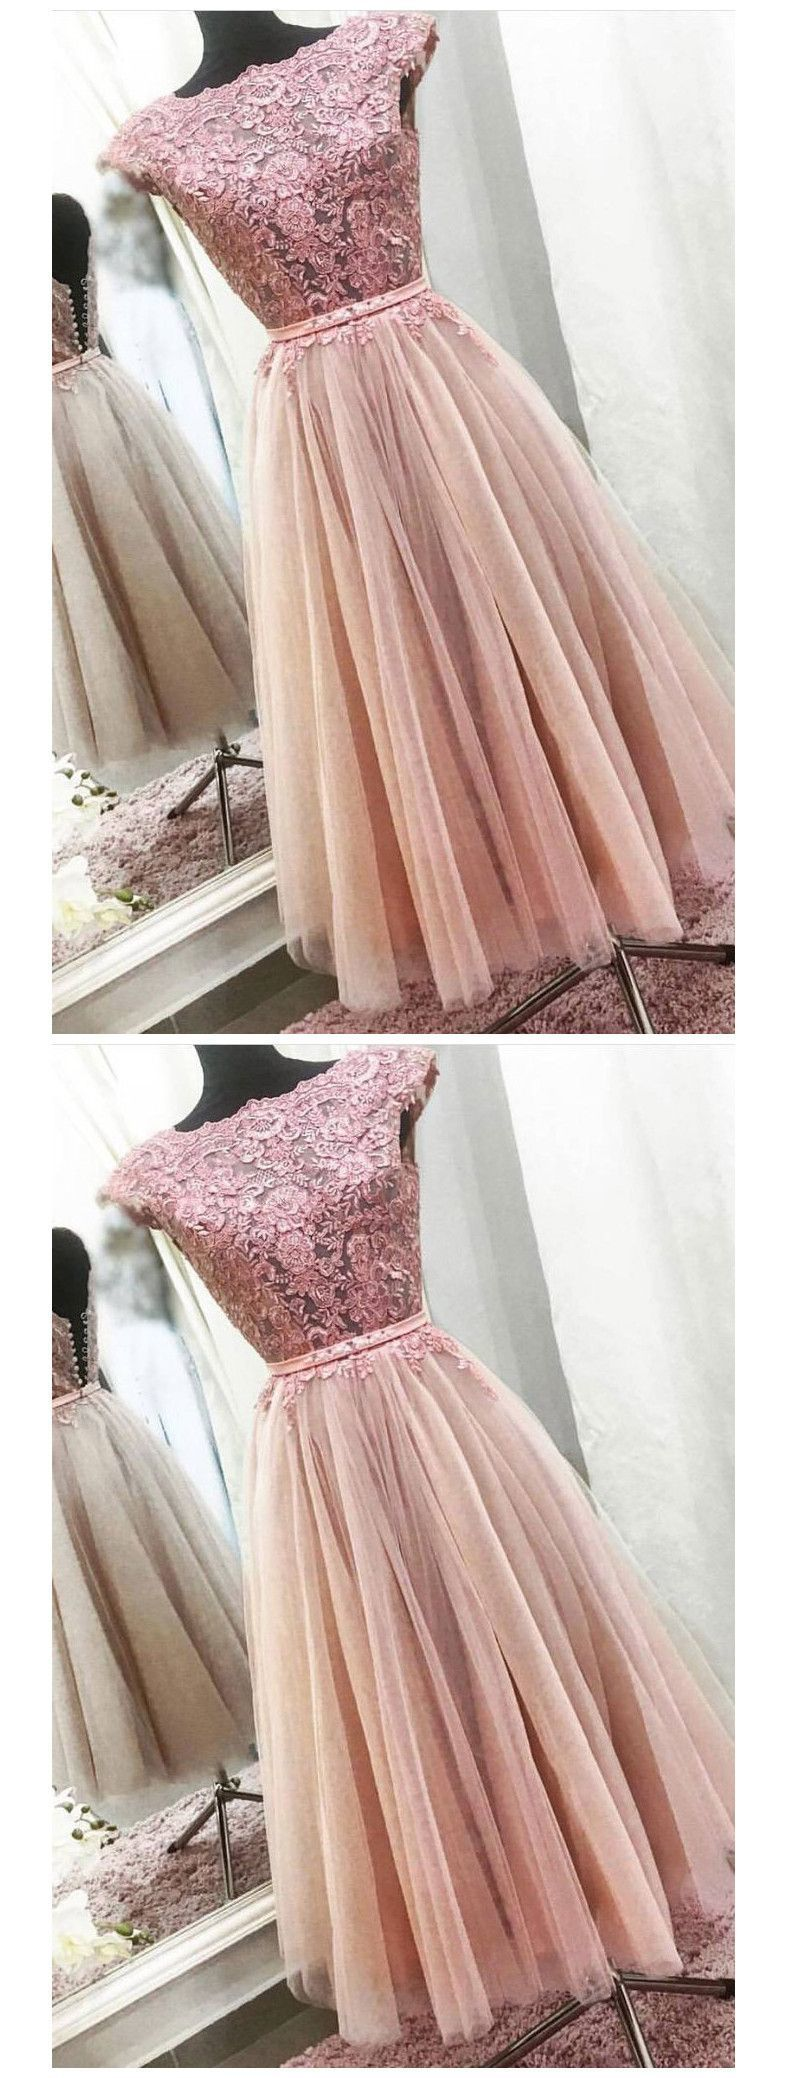 A-LINE BATEAU TEA LENGTH PROM DRESS WITH LACE PROM DRESSES LONG EVENING DRESS